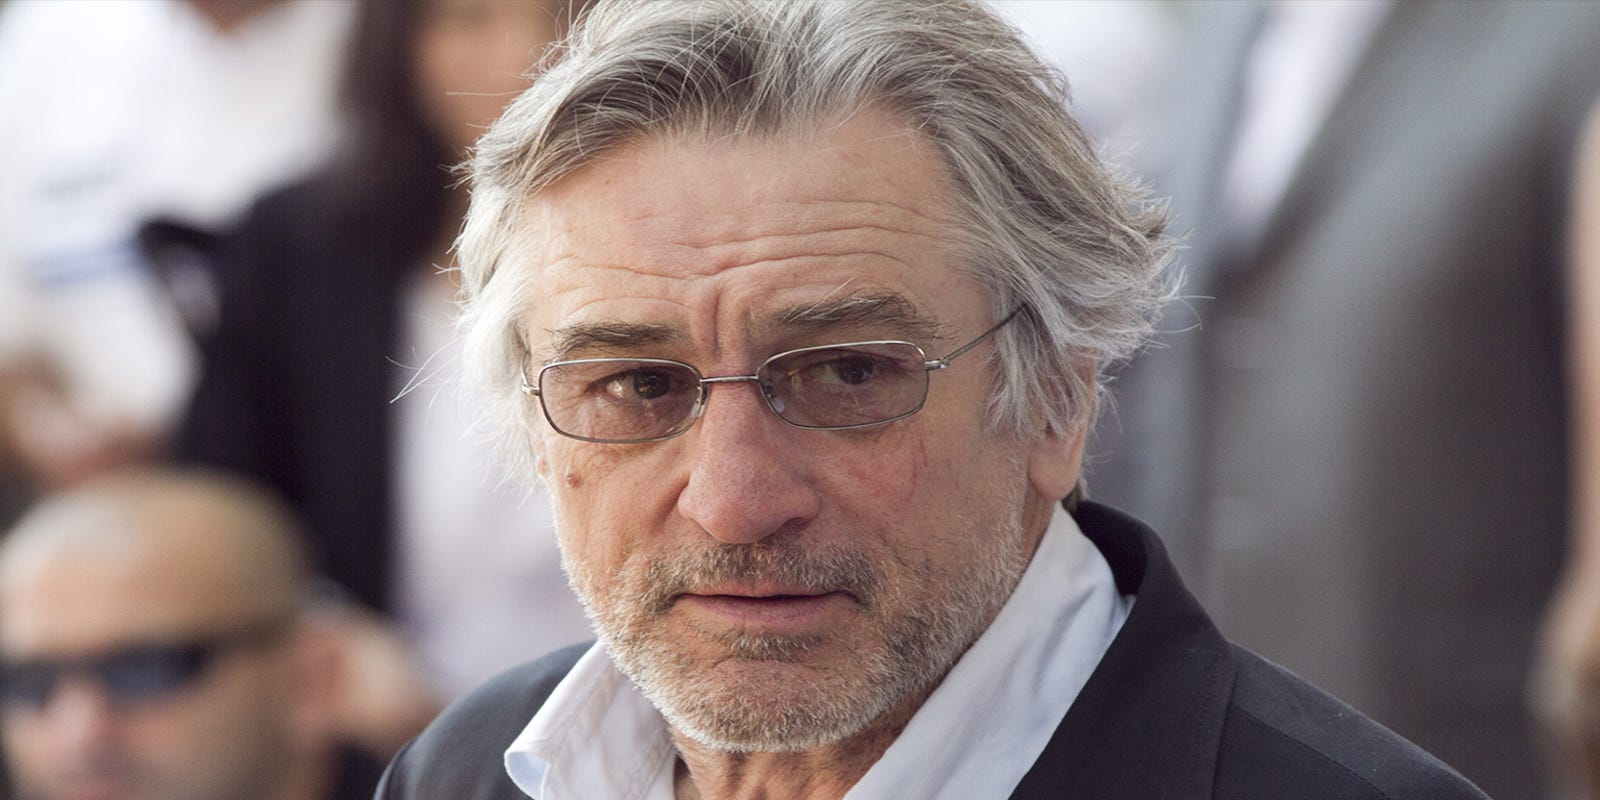 Robert De Niro describes leg injury pain while filming 'Killers of the Flower Moon' as 'excruciating'